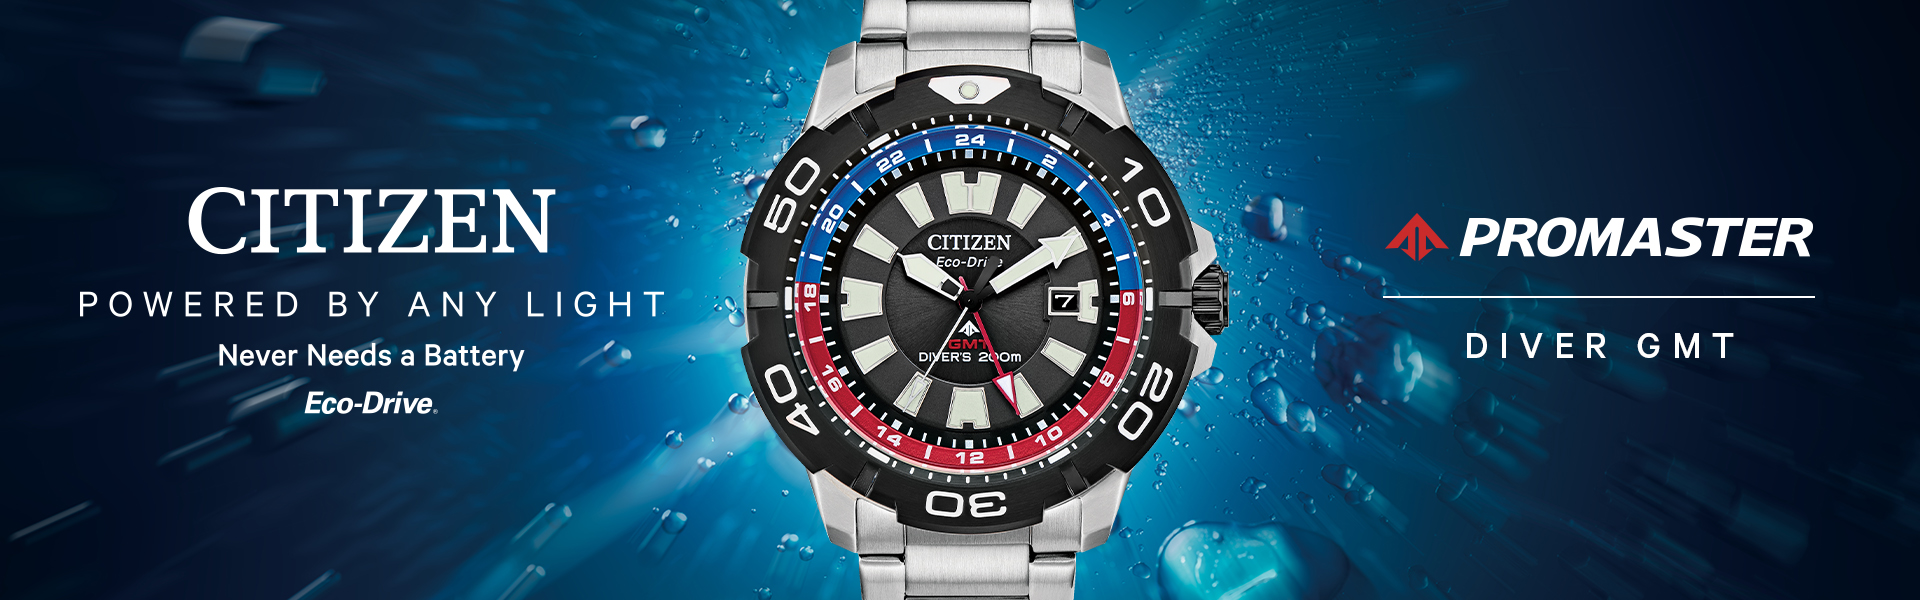 Redford Jewelry and Coin Citizen